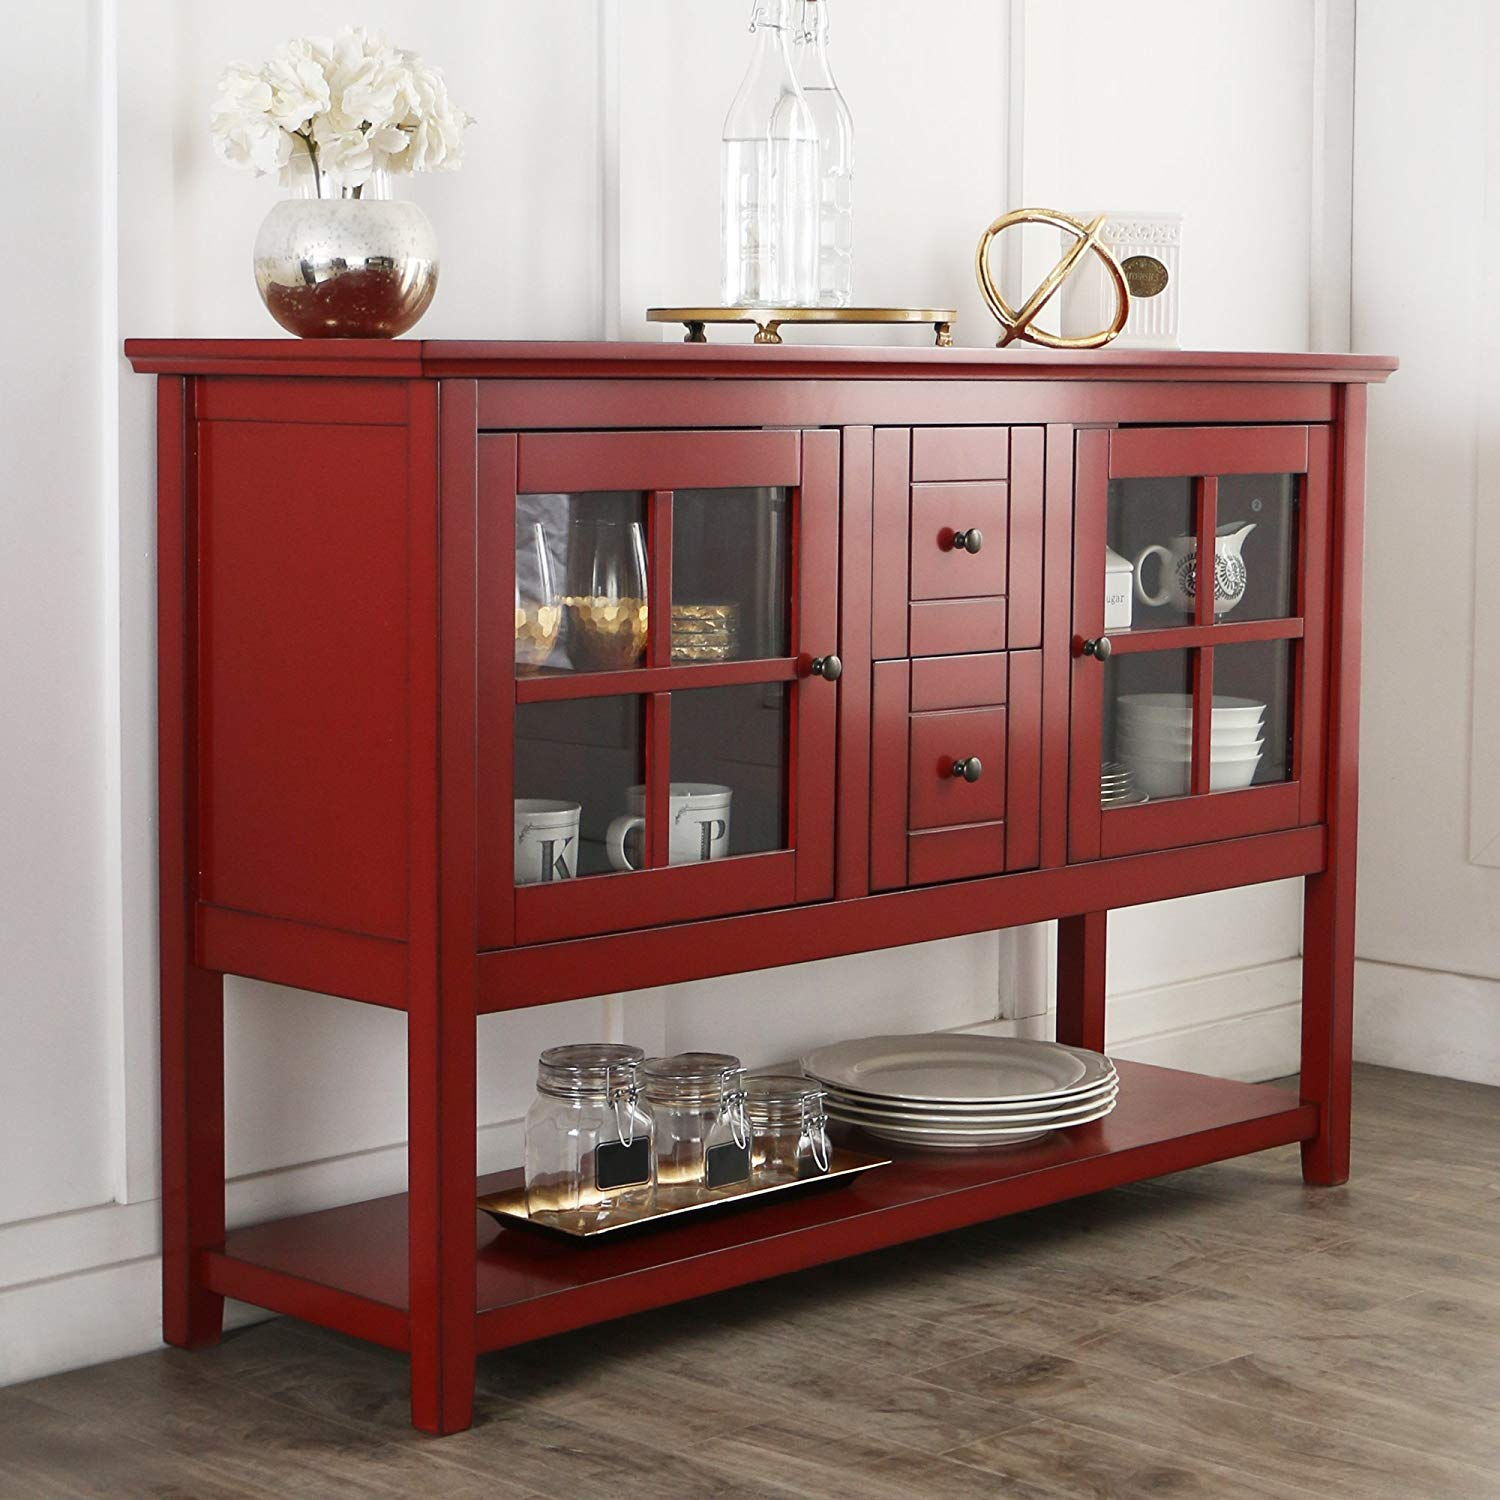 furniture console table wood stand antique oak accent red kitchen dining elm coffee battery operated bedroom lights essentials timber wooden chairs modern living room sets slab